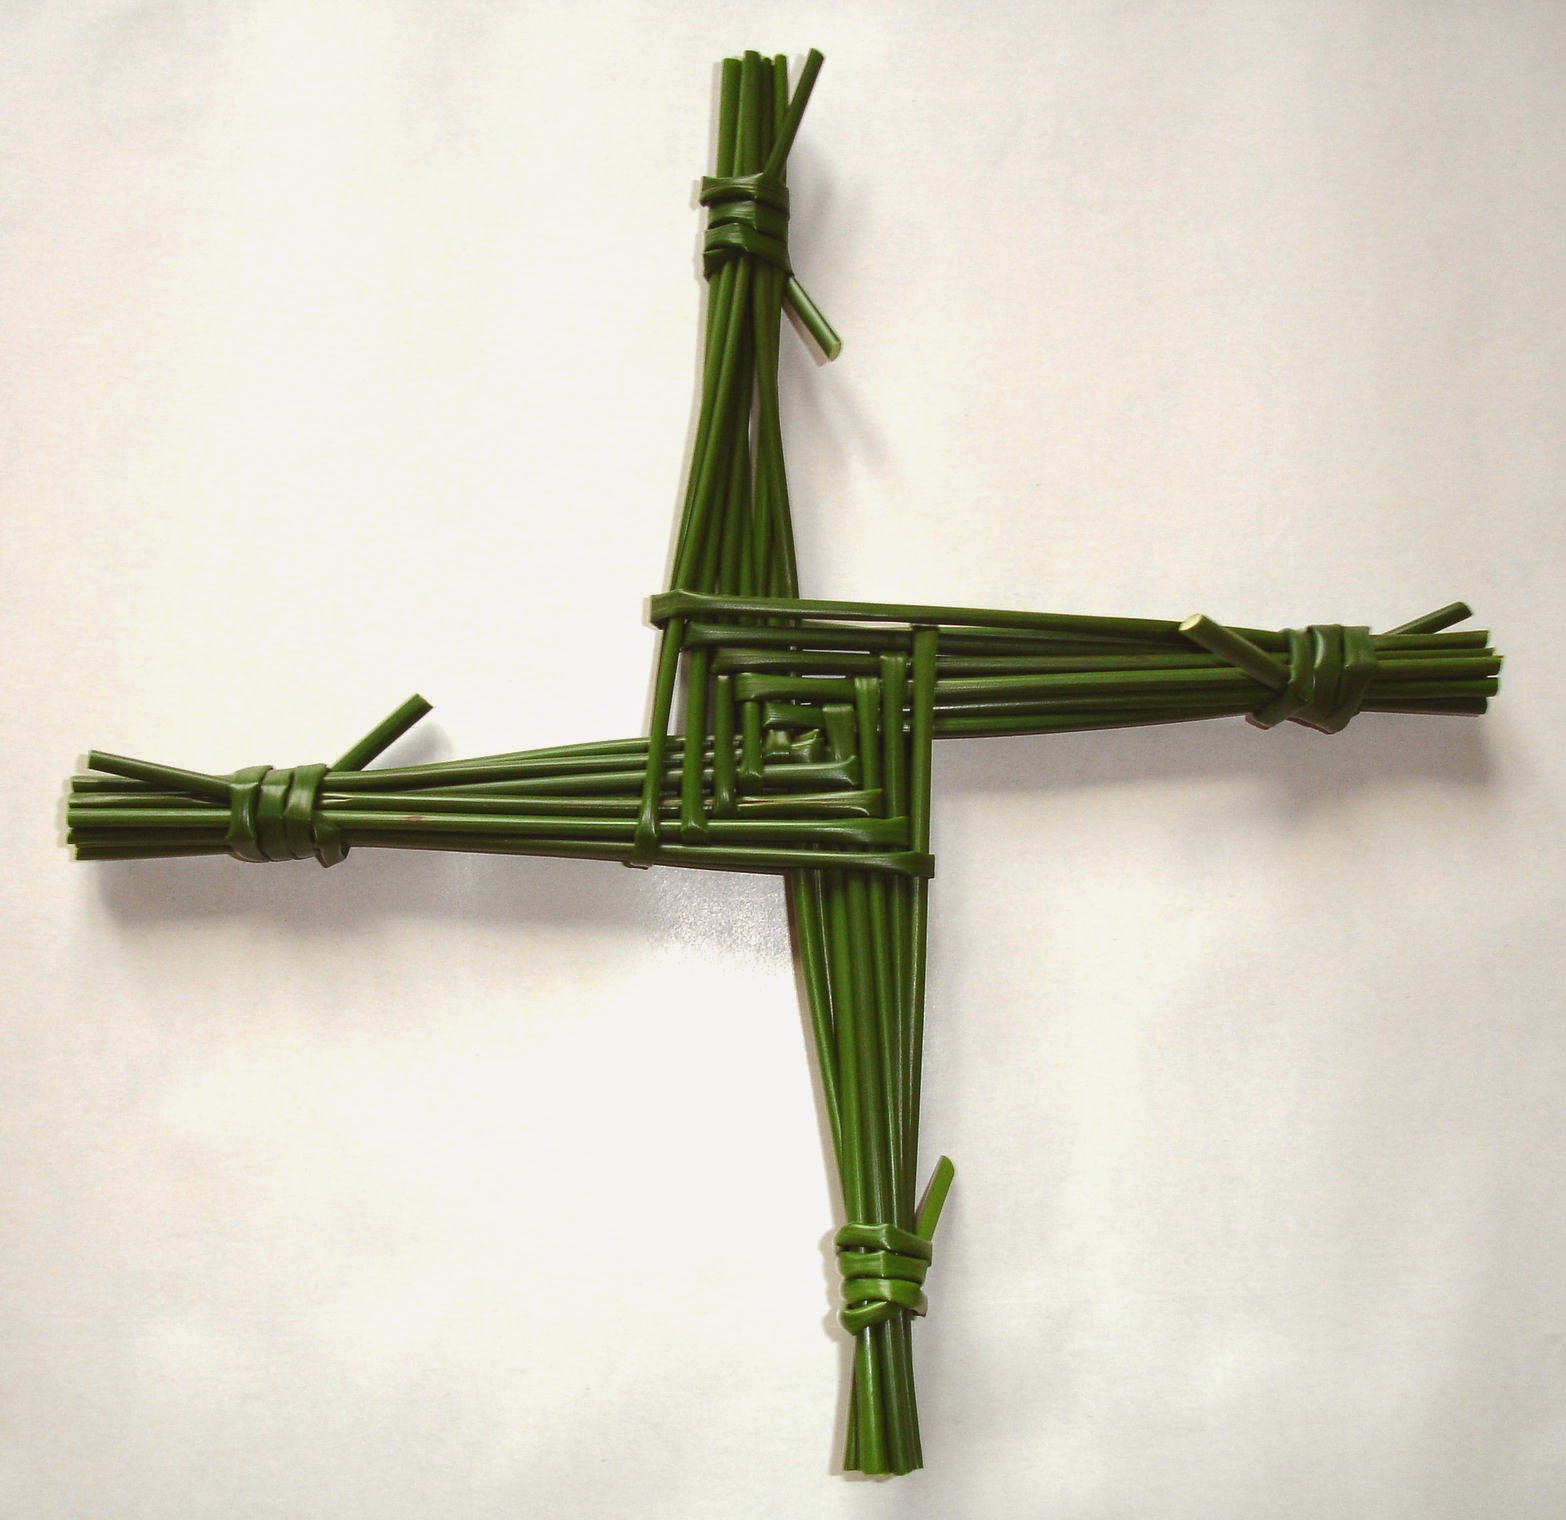 Brigid's Cross image By Culnacreann Wikimedia Commons